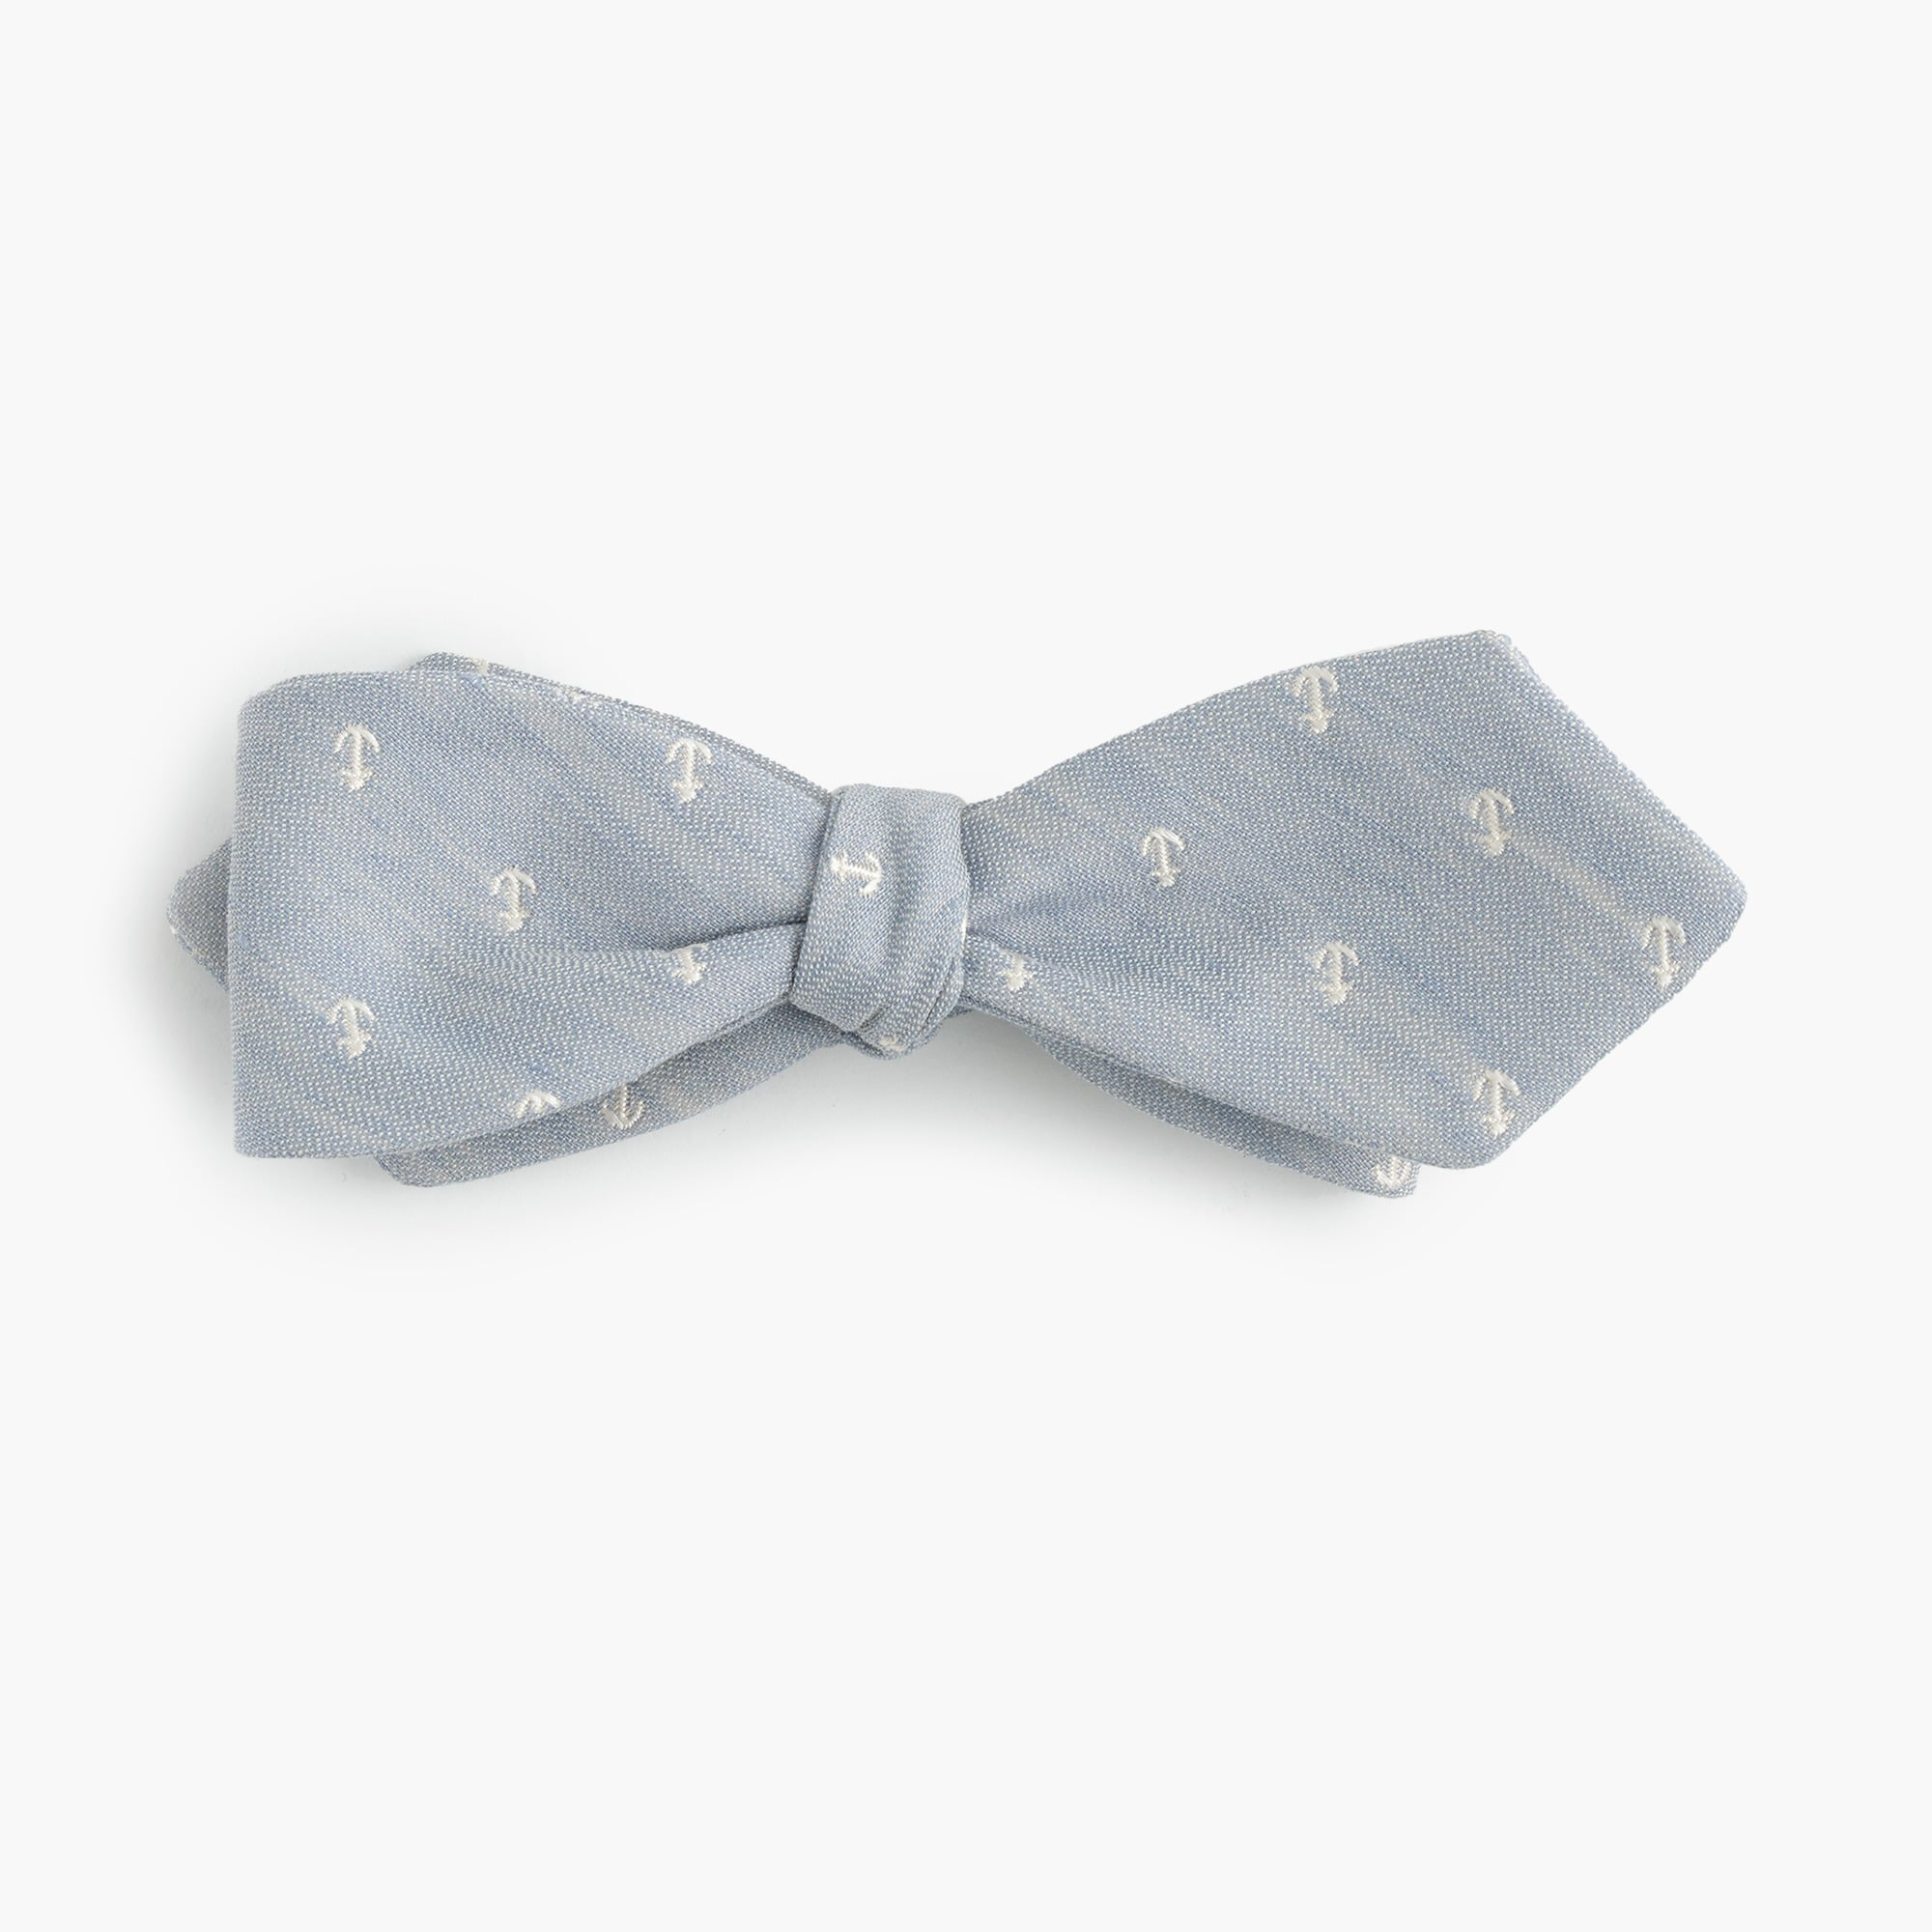 Image 1 for Cotton-linen bow tie in anchor print